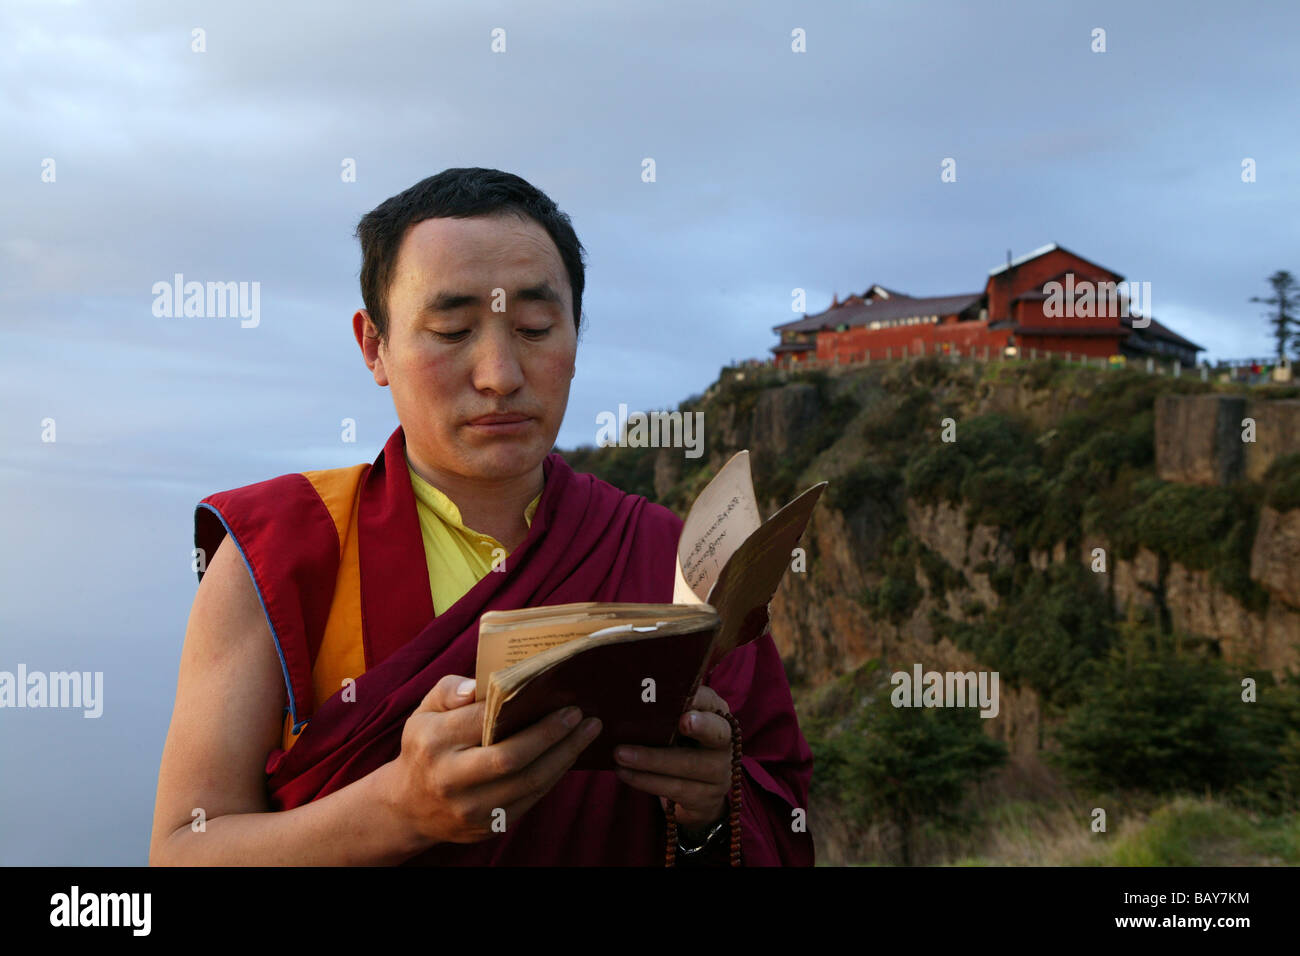 Tibetan monk reading holy scripts at sunrise, Emei Shan mountains, Sichuan province, China, Asia - Stock Image